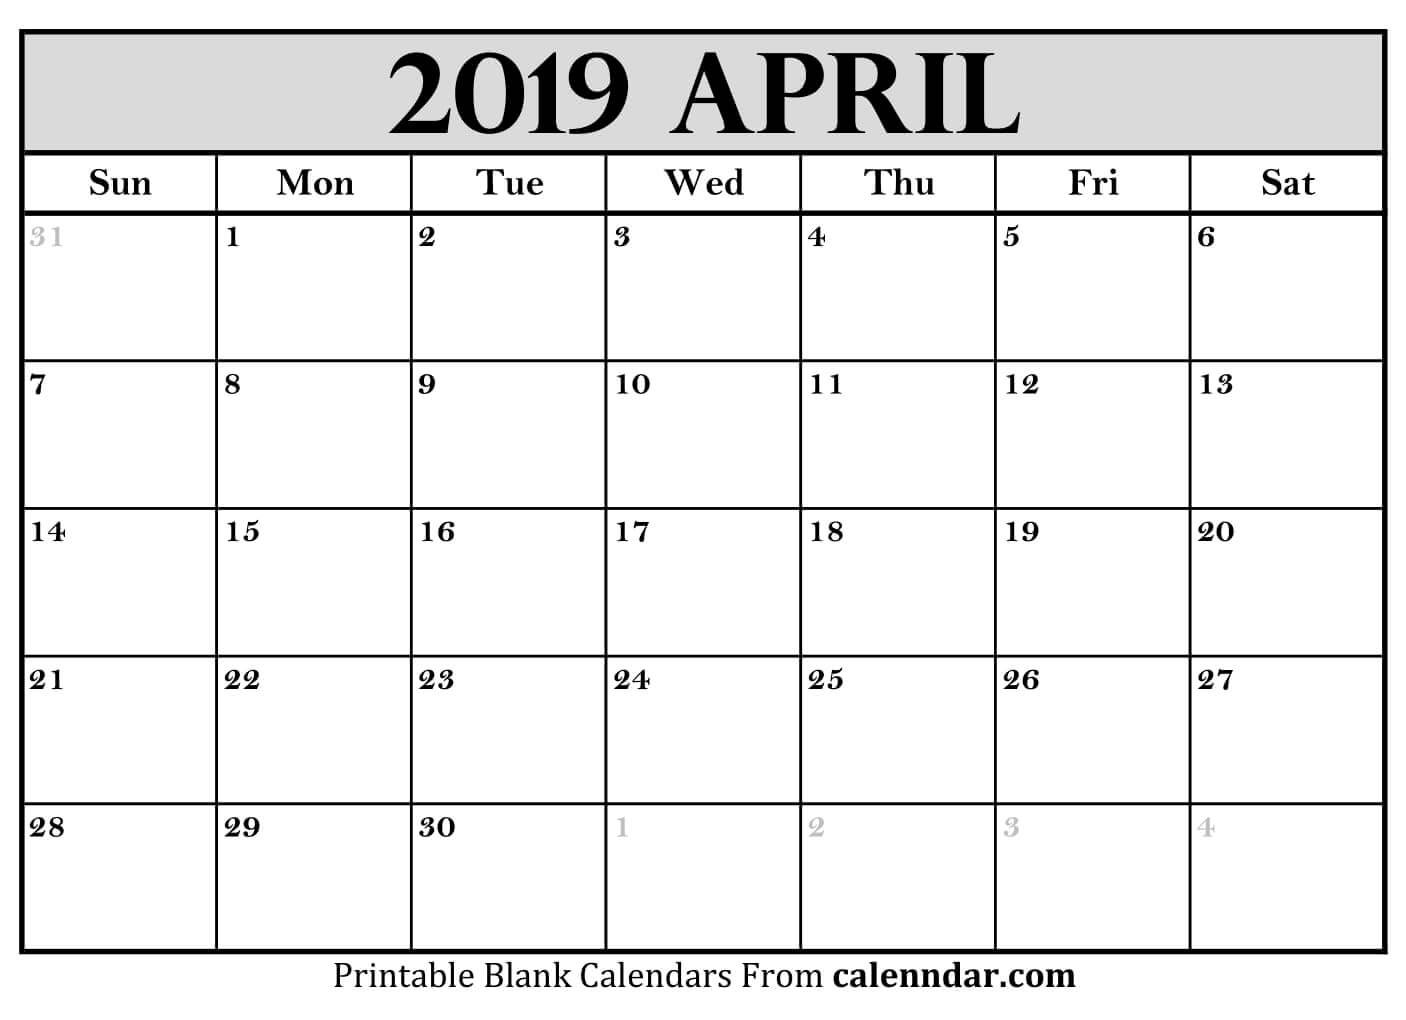 Blank April 2019 Calendar Templates – Calenndar April 3 2019 Calendar